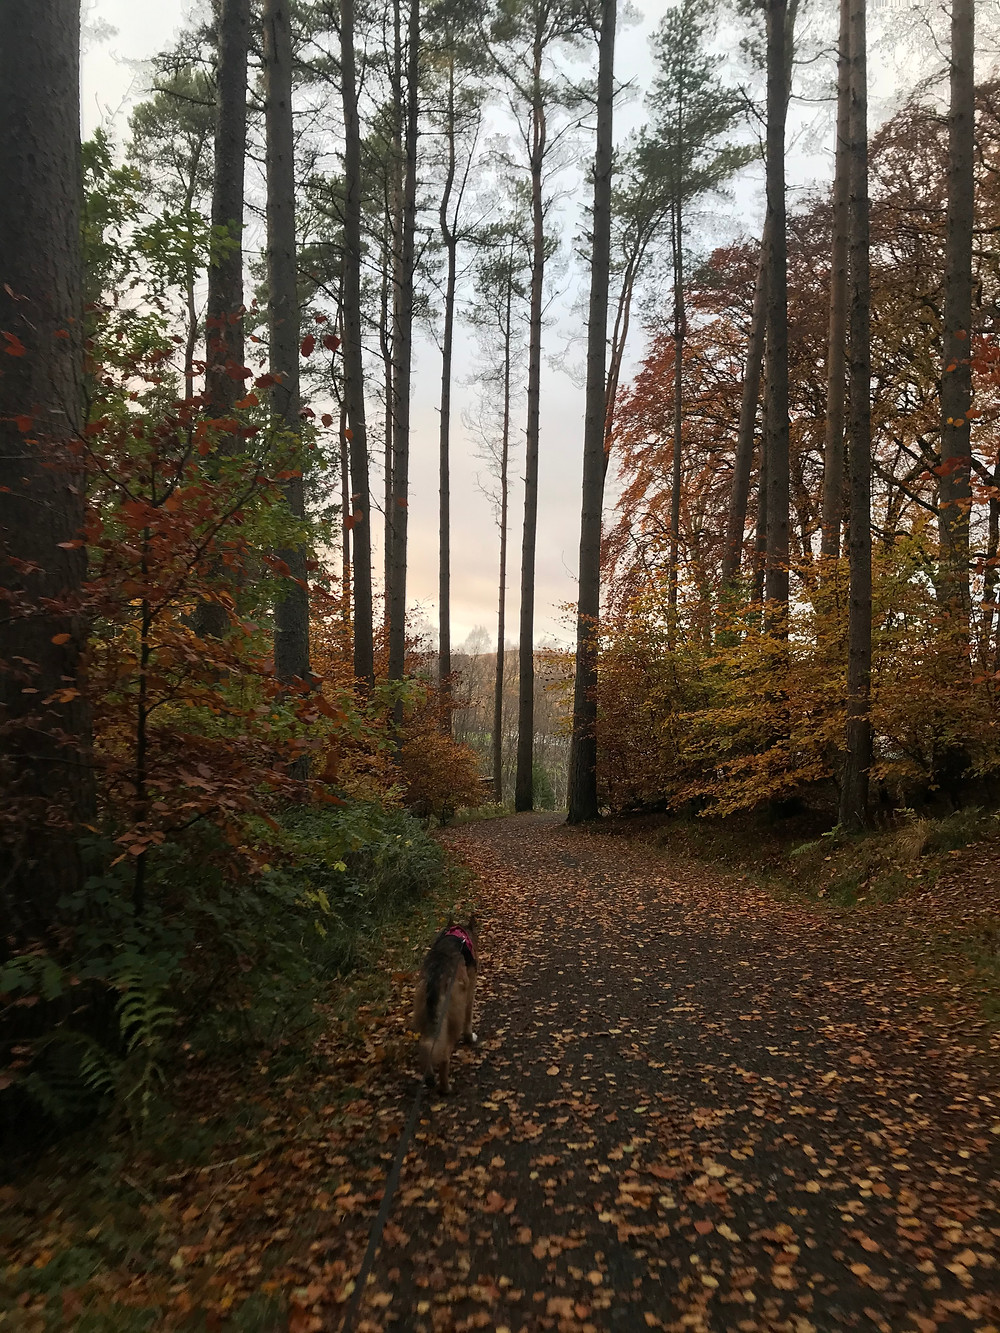 Photograph of a German Shepherd - Kali Rowntree - walking away from the camera in an Autumnal woodland setting; Kielder Forest Northumberland. Photograph property of Ceryn Rowntree.